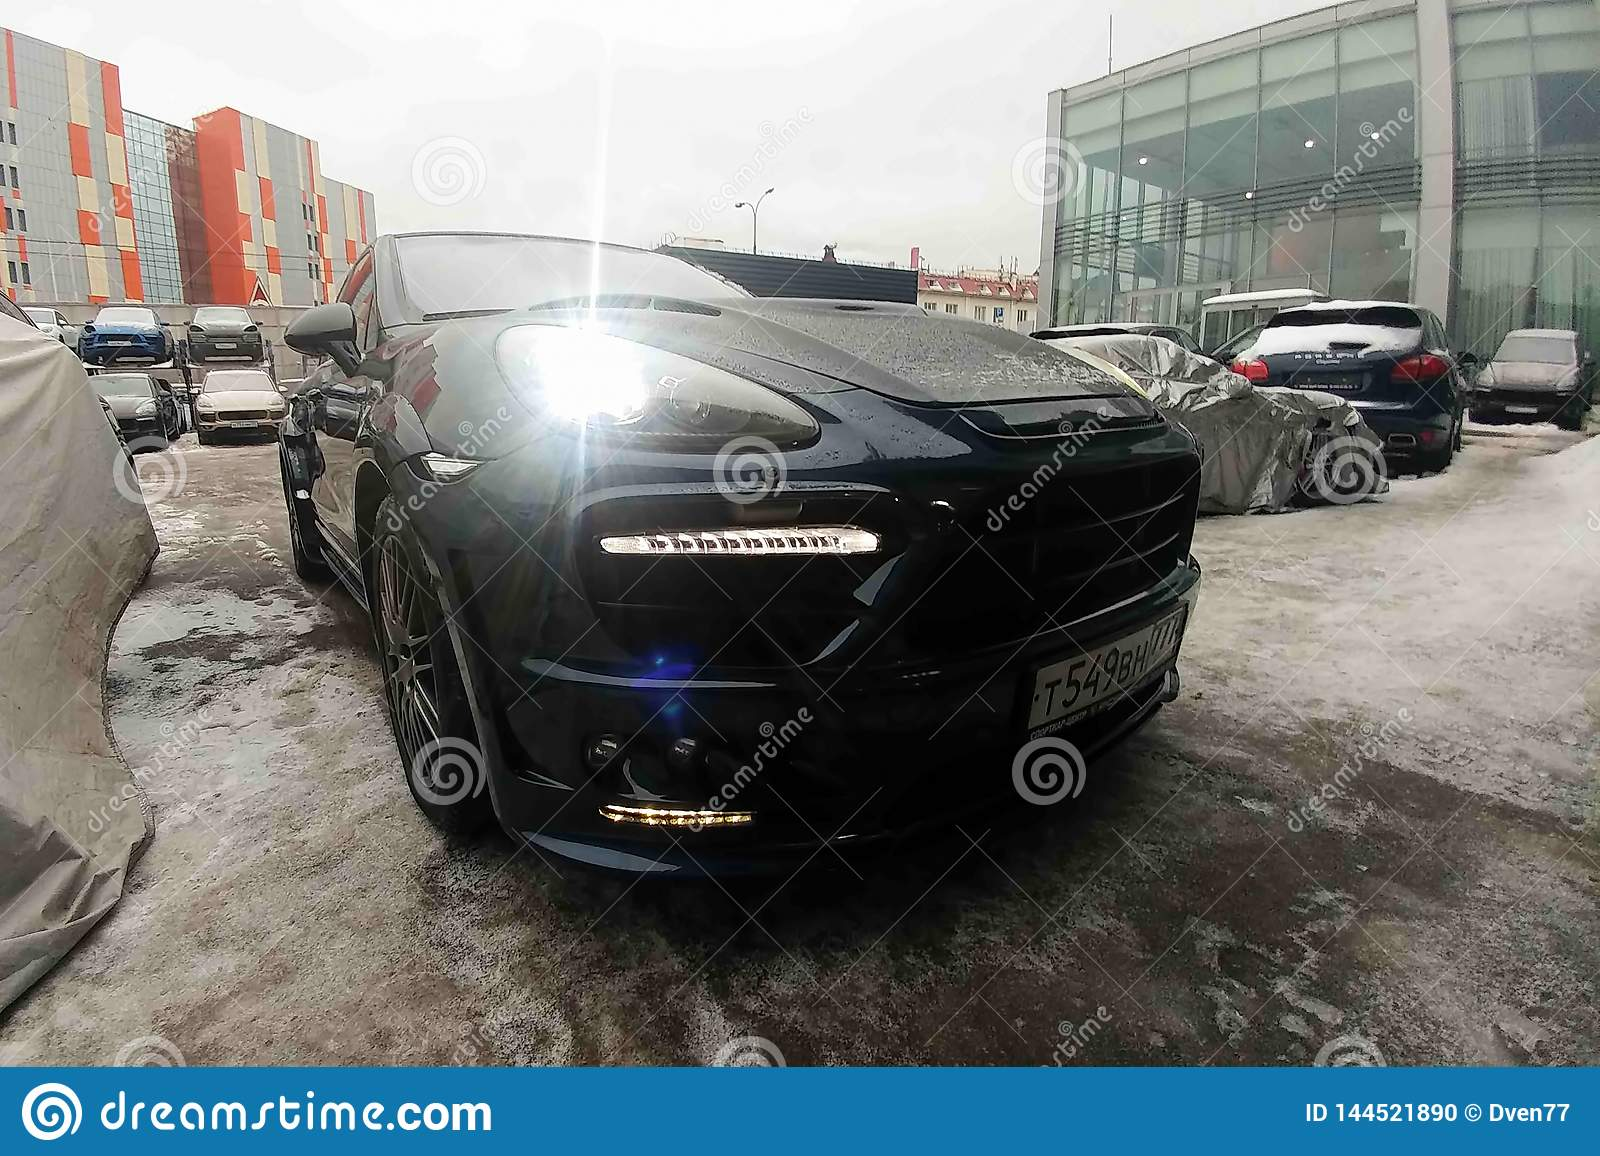 Moscow Russia April 01 2019 Black Porsche Cayenne Turbo Tuned By Wide Body Modified Hood And Headlights Premium Suv Parked Editorial Image Image Of Editorial Engineering 144521890